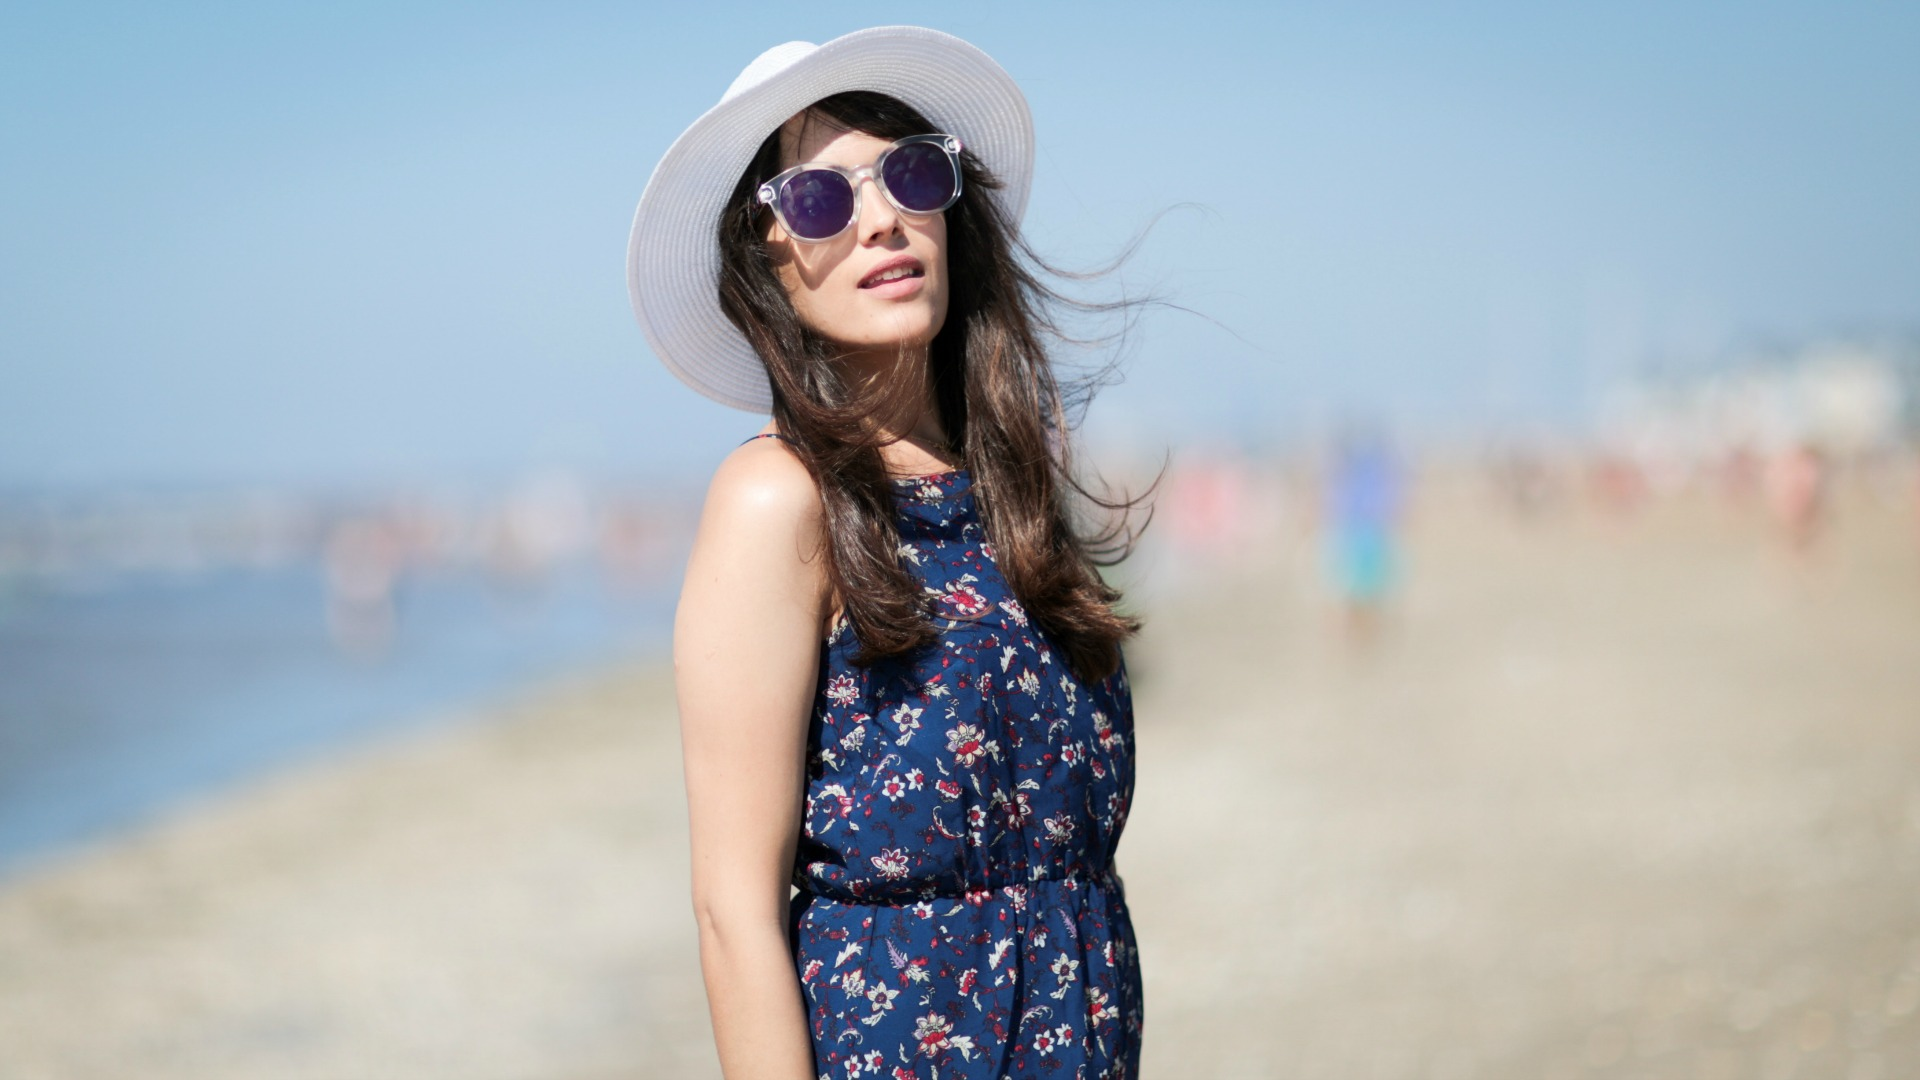 beach wear what to wear to the beach: 60 perfect outfit ideas esyiczy